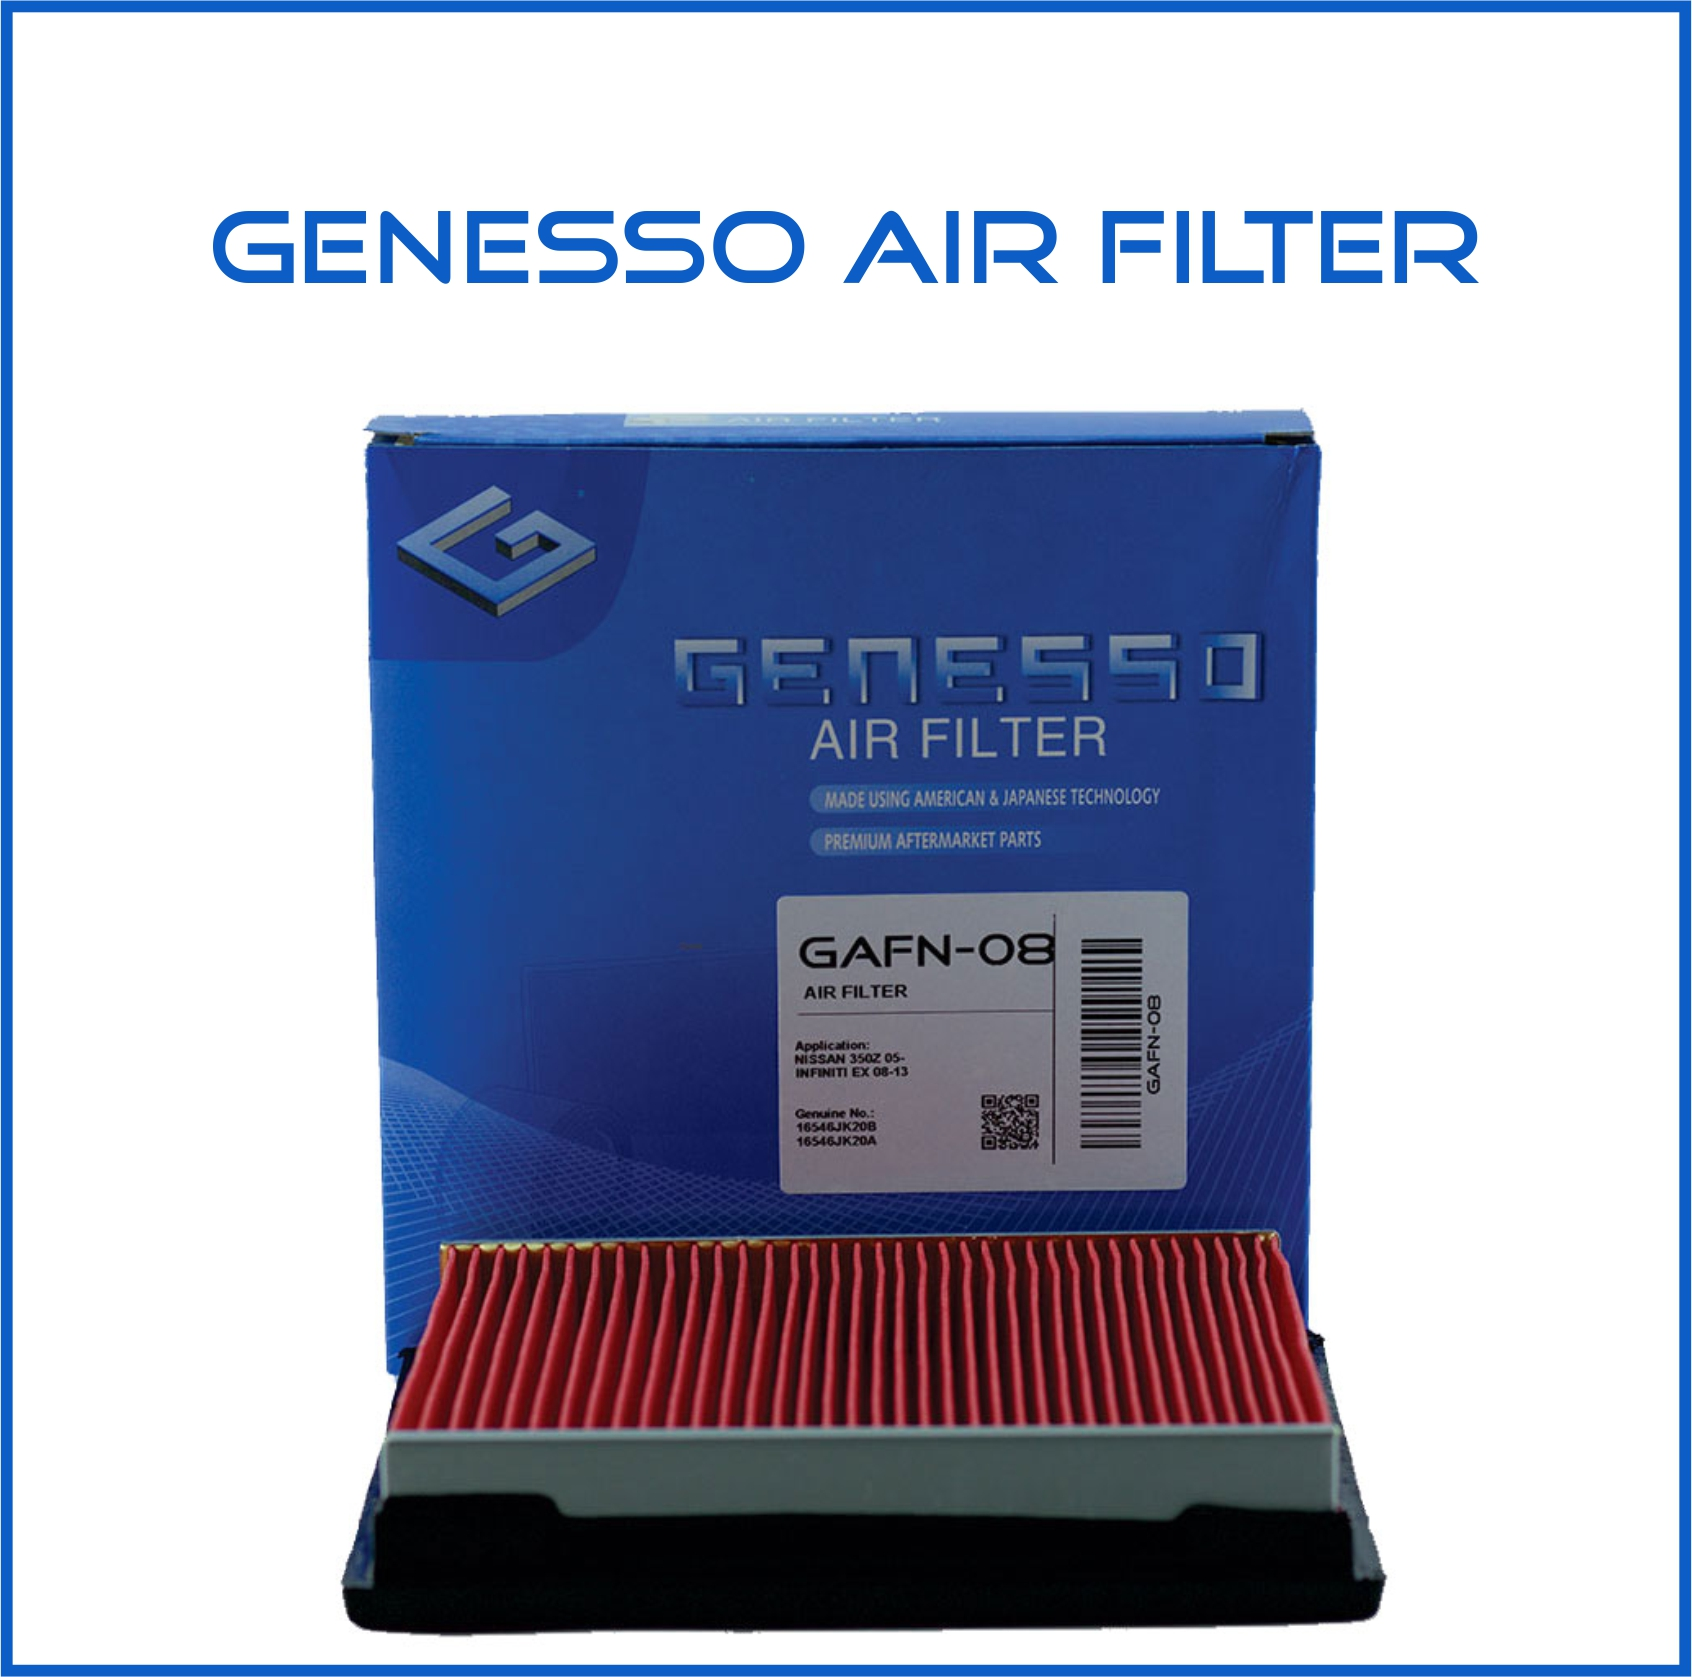 Genesso Air Filter